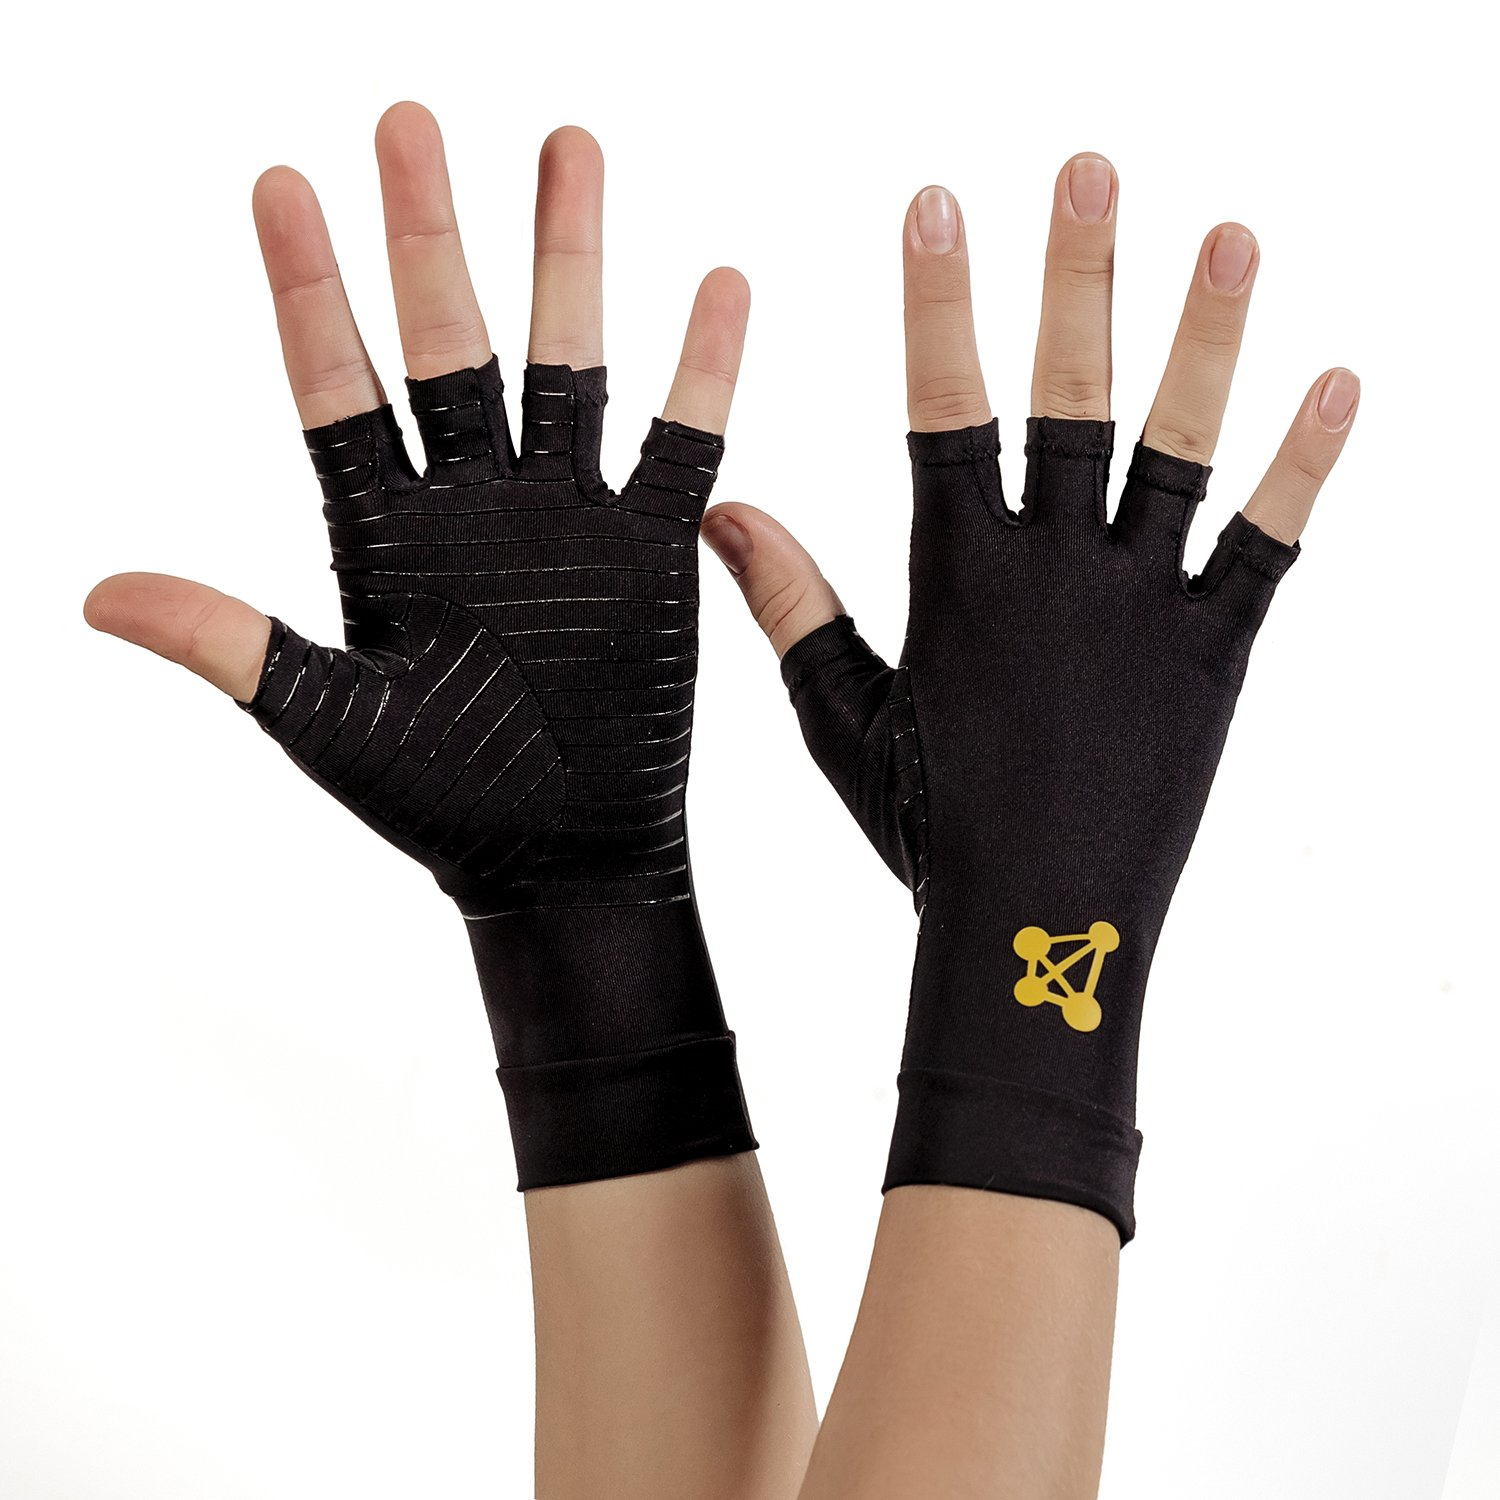 Gloves With Fingertips Out: Amazon.com: Hand Pain Relief Gloves